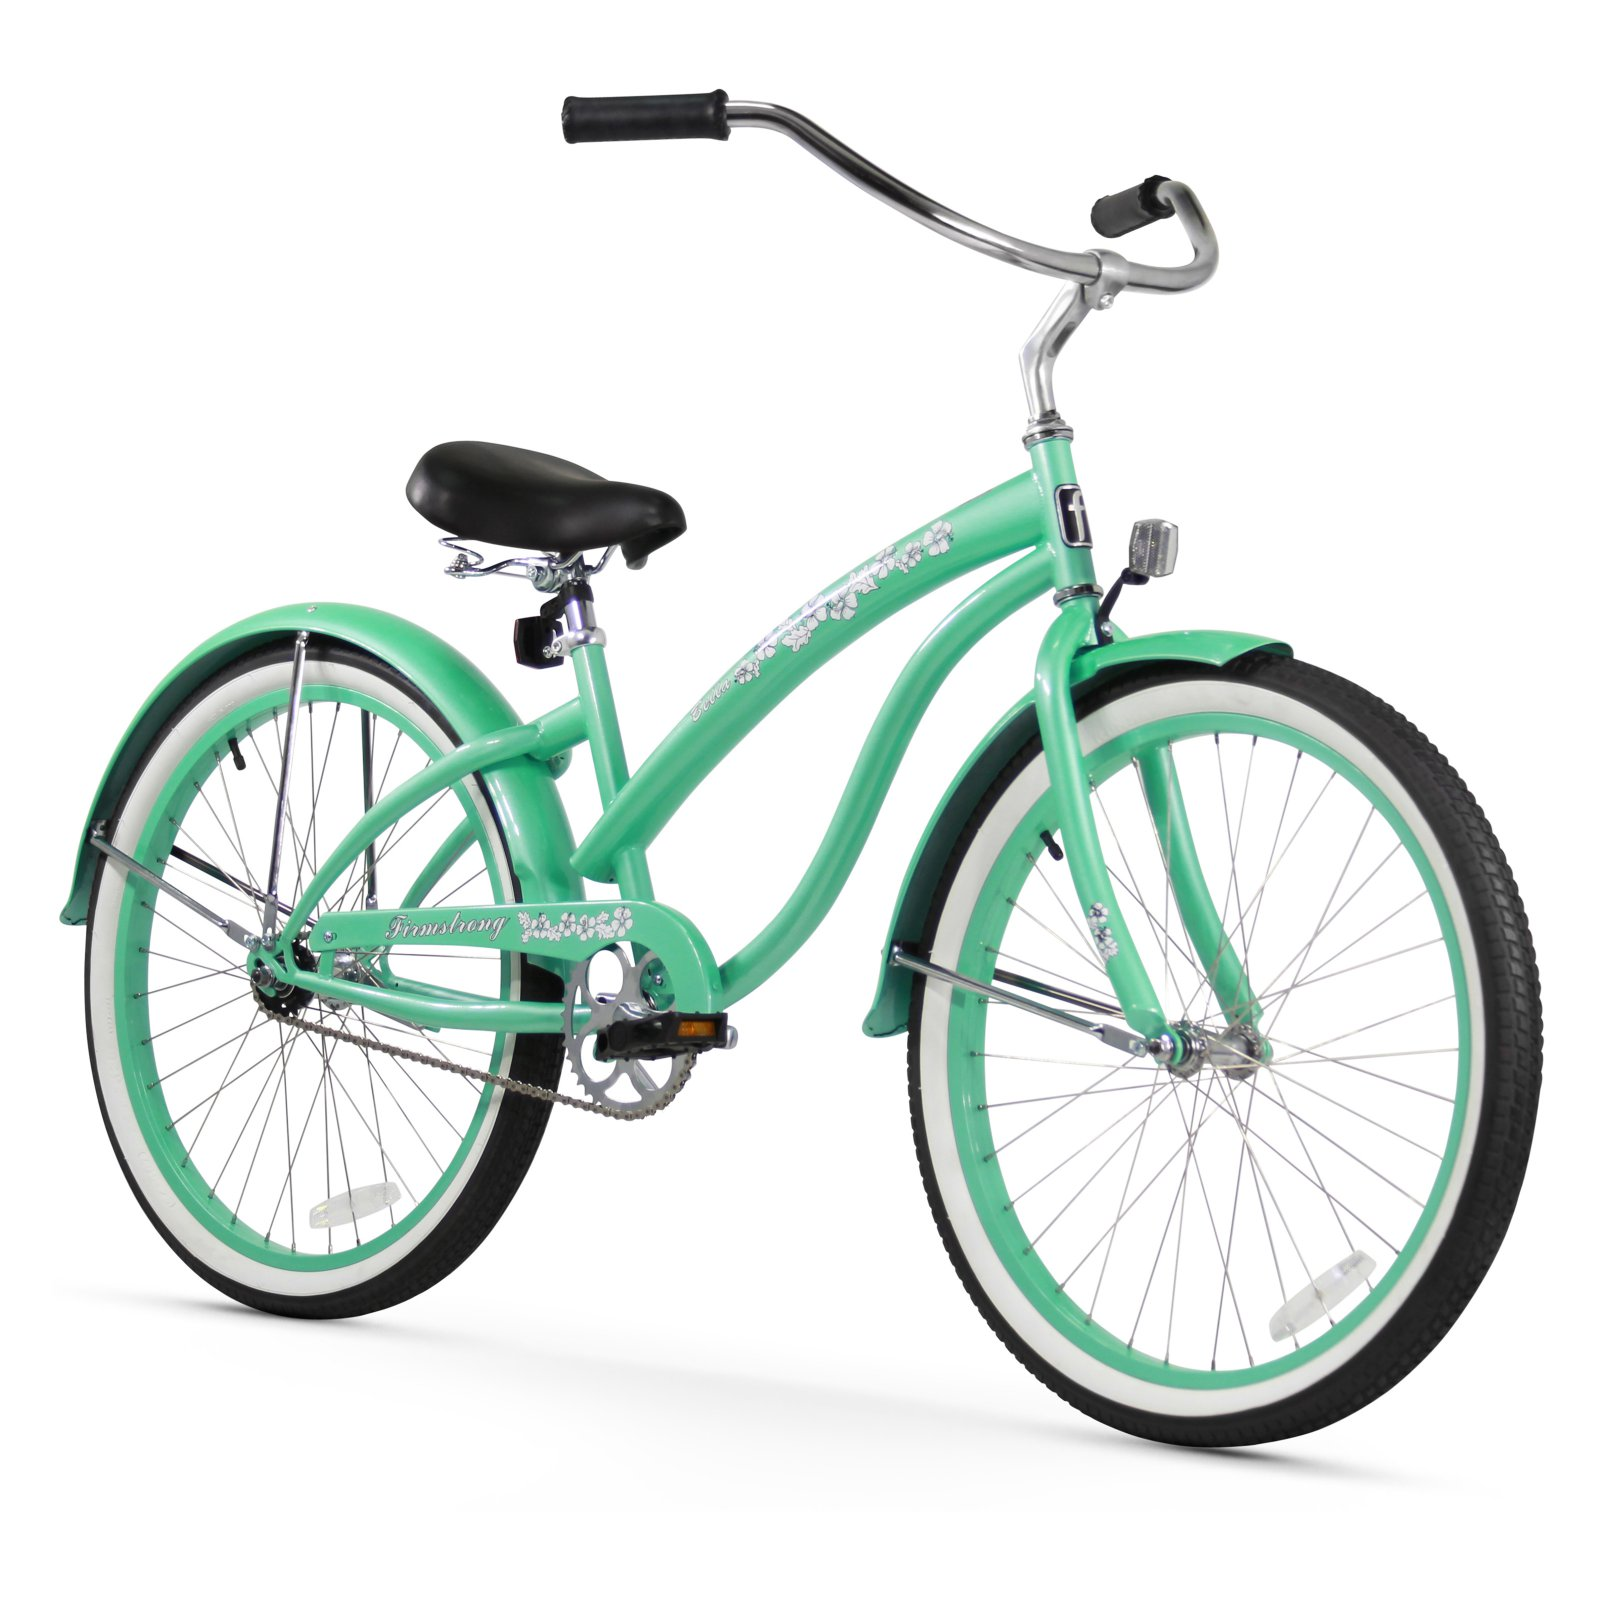 Firmstrong Bella Classic 24 in. 3 Speed Beach Cruiser Bicycle - Mint Green